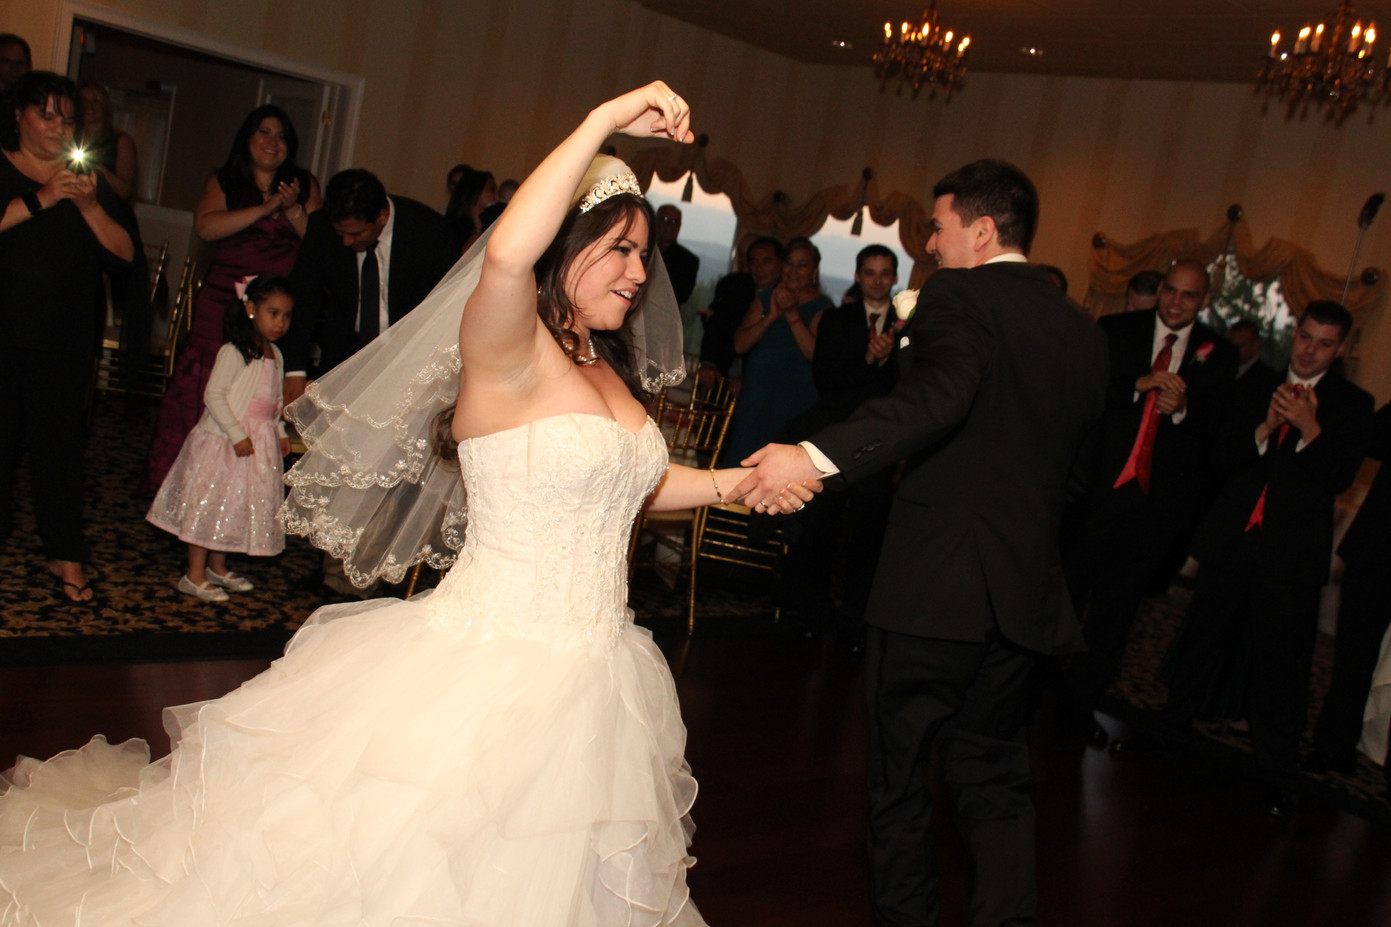 Bride-And-Groom-Dance-Number.JPG